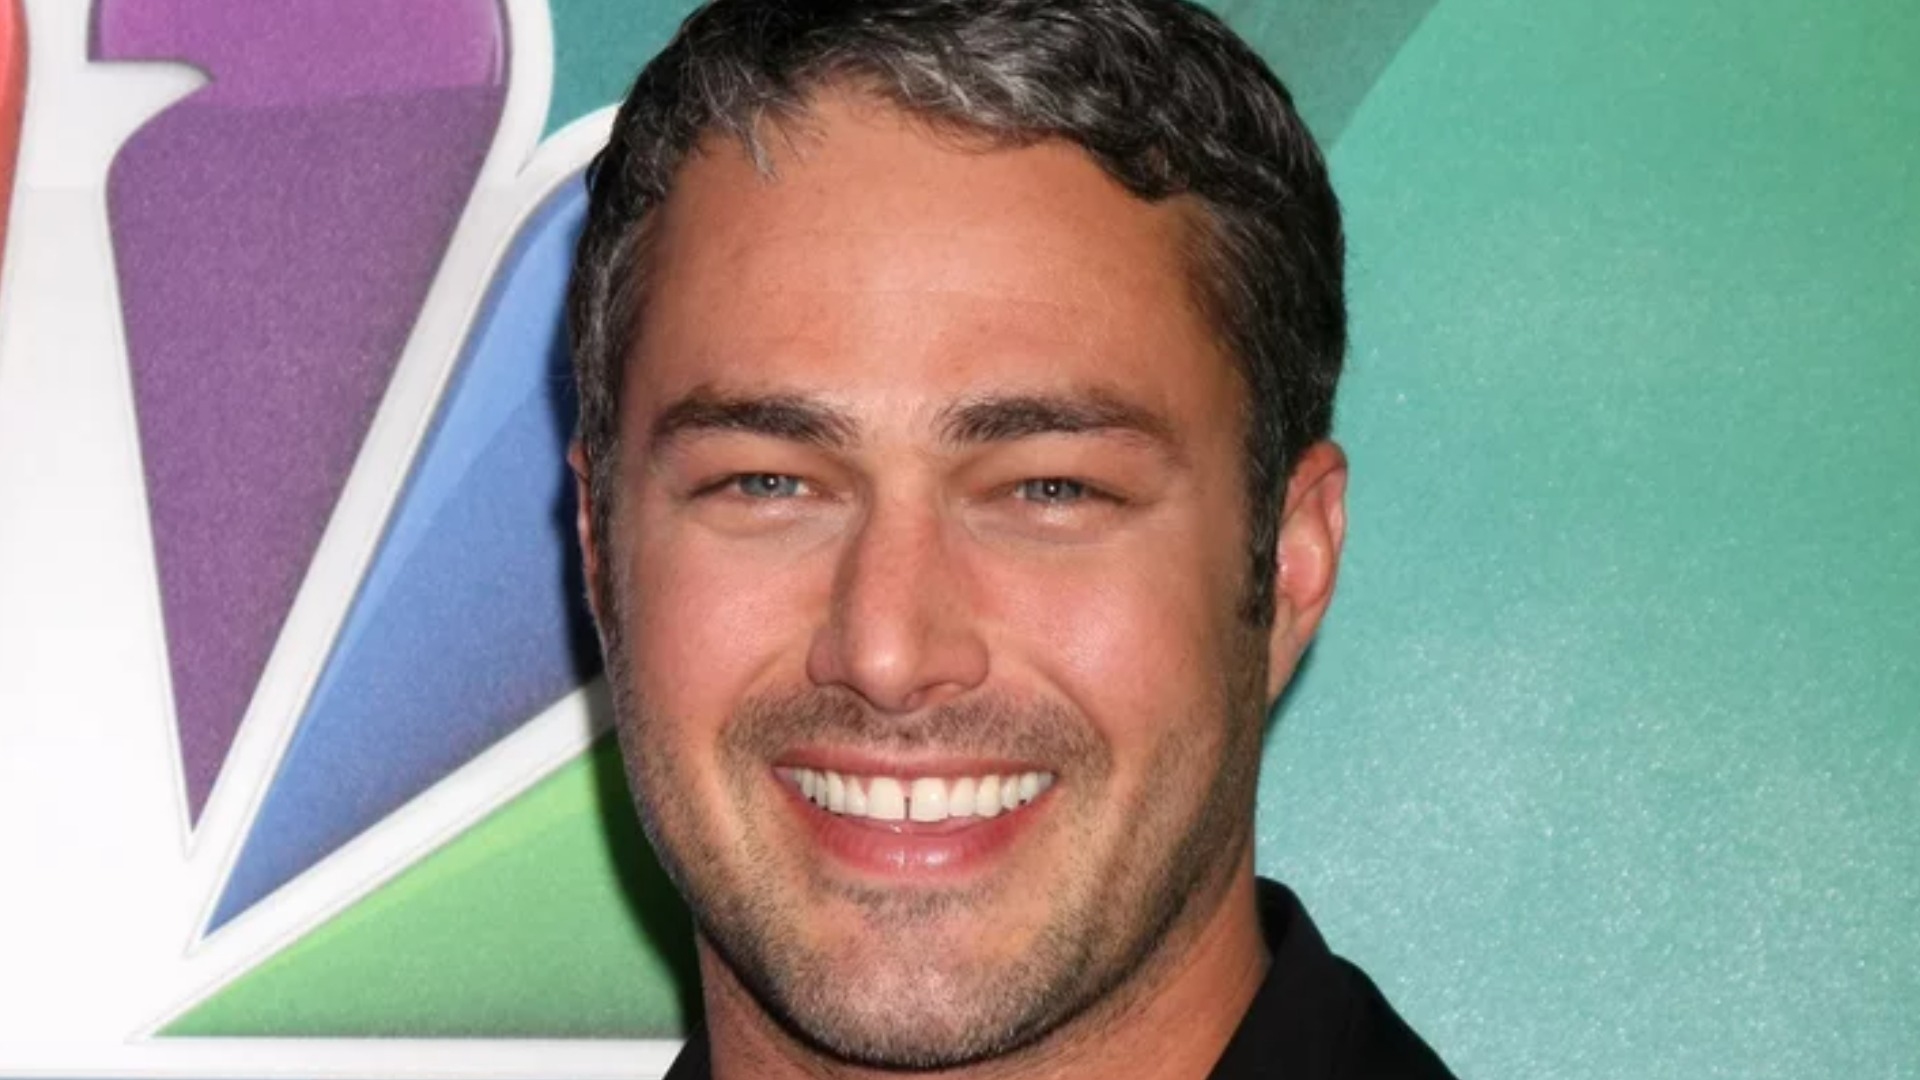 The Real-Life Legal Issues Of Chicago Fire Star Taylor Kinney